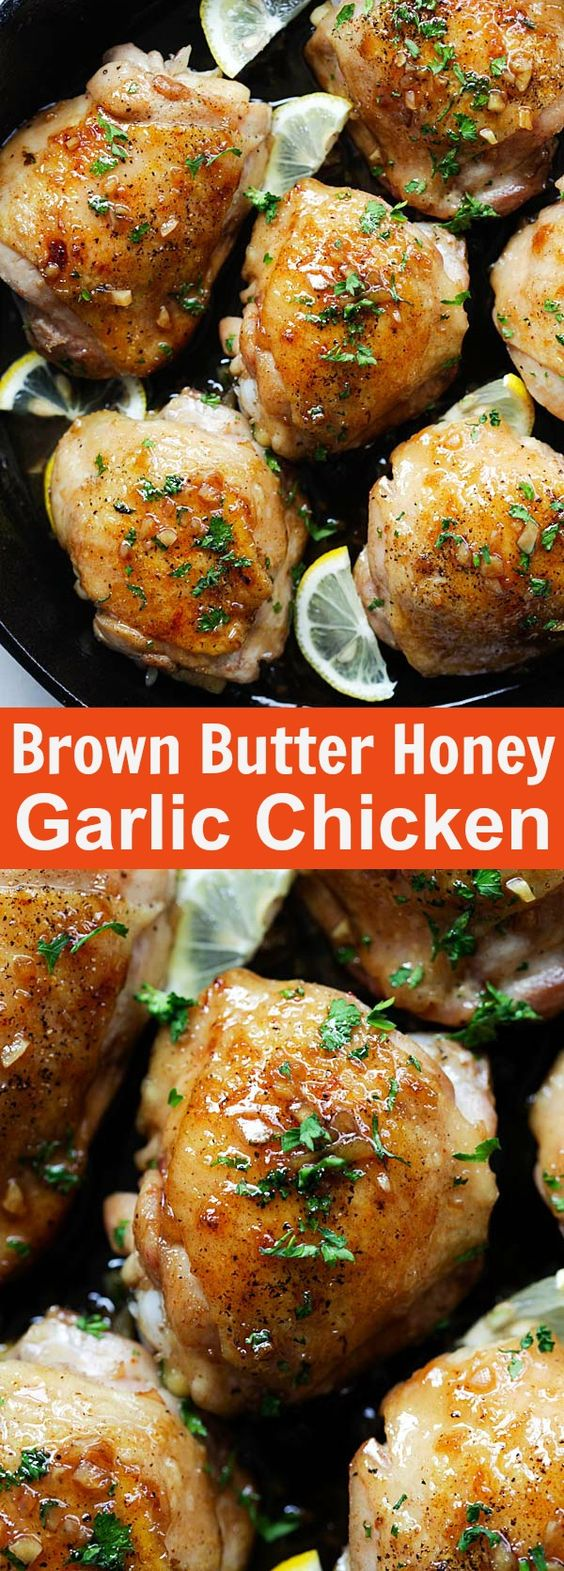 Brown Butter Honey Garlic Chicken - sweet, savory and sticky skillet chicken with the most delicious honey garlic sauce. Easy chicken recipe for the family | rasamalaysia.com